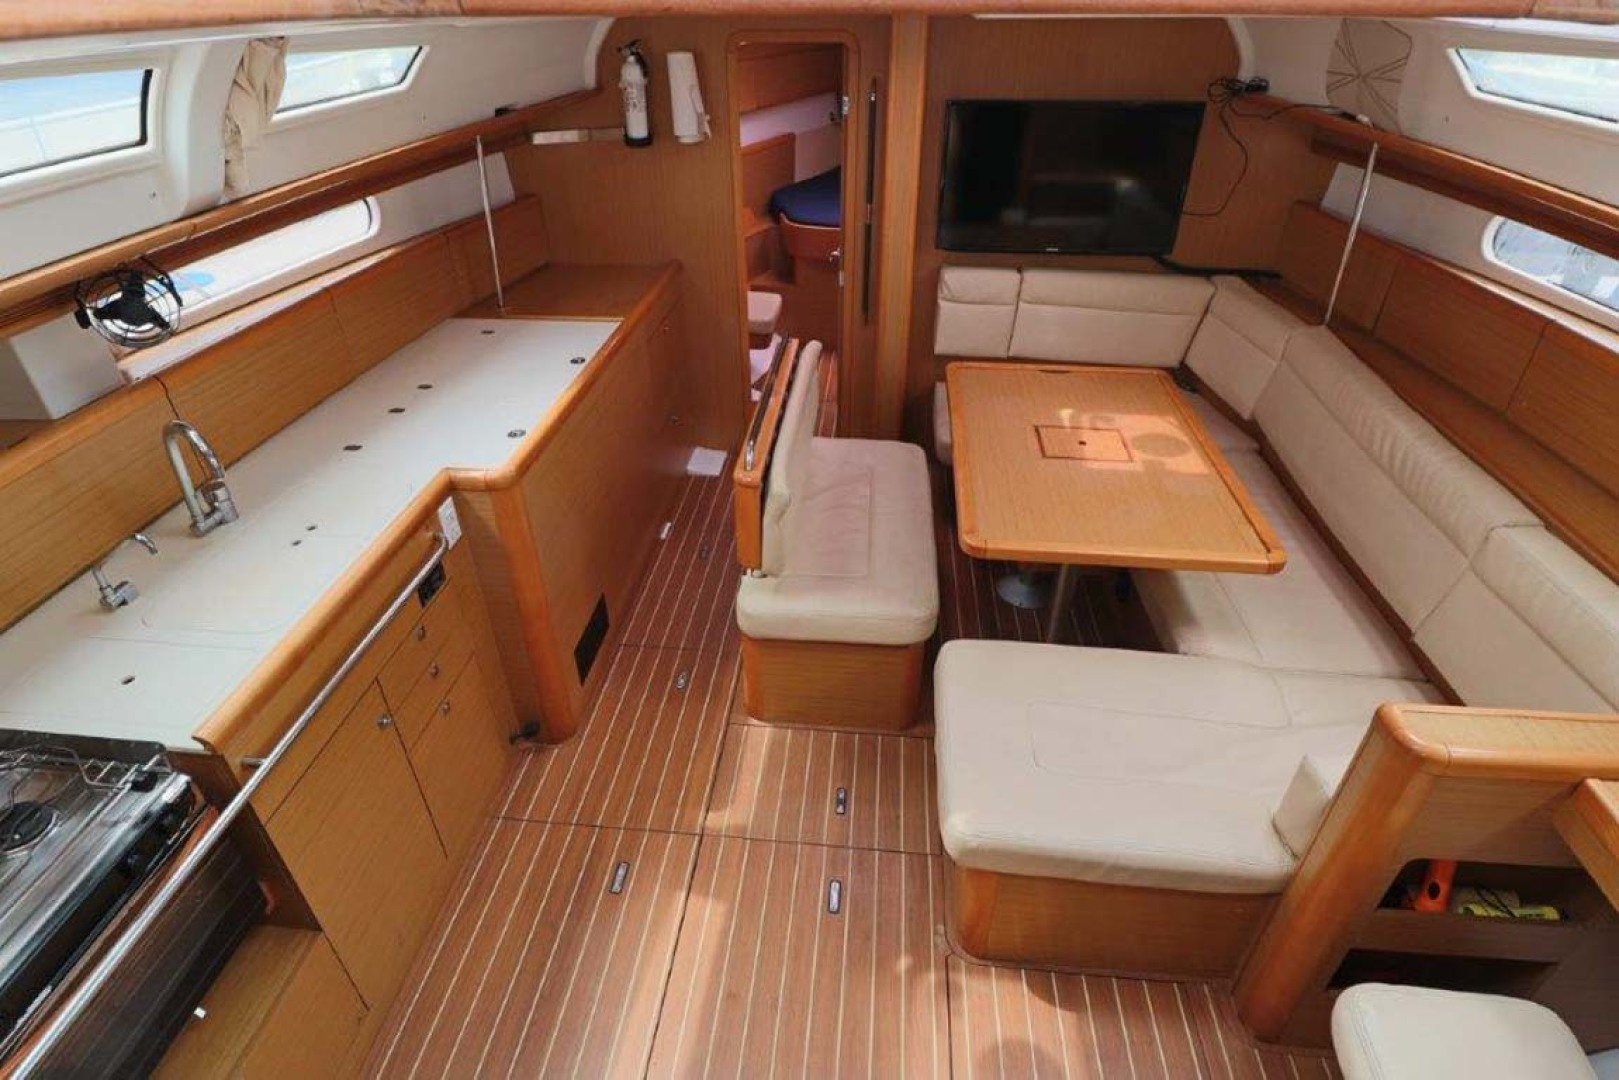 Jeanneau-Sun Odyssey 44i 2010-Intrigue Poulsbo-Washington-United States-Salon And Galley-1153315 | Thumbnail